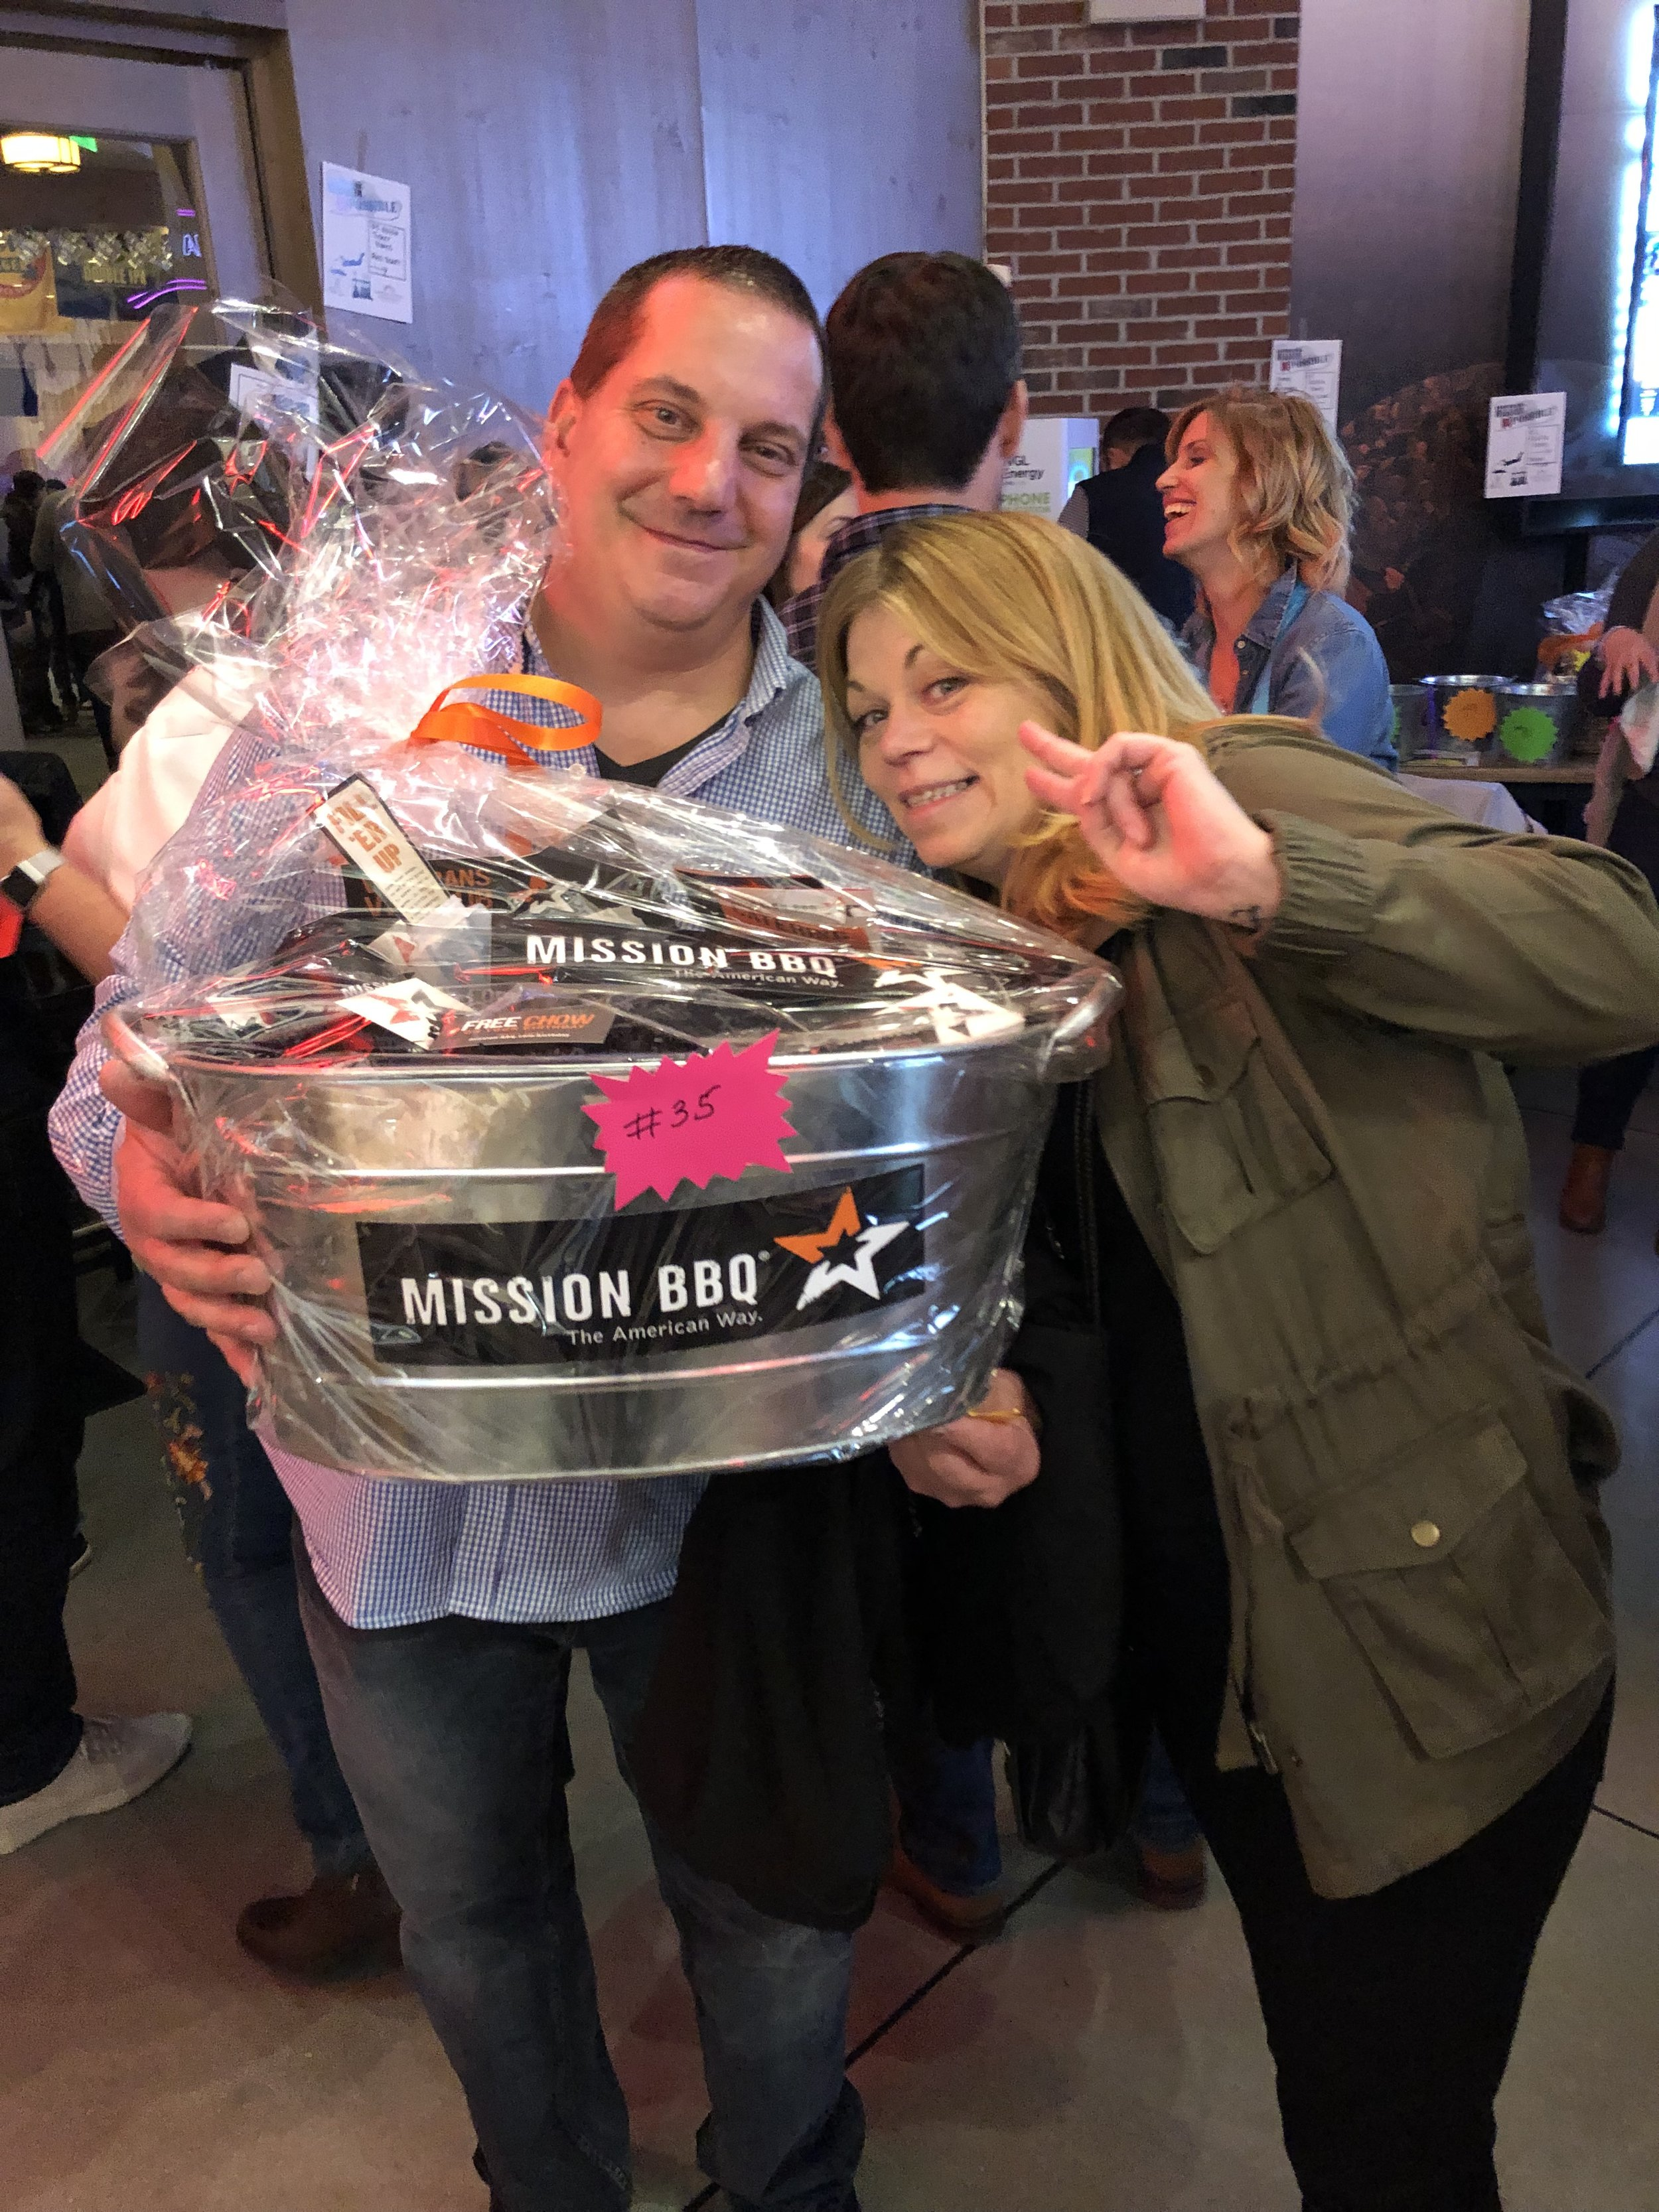 Paul and Lisa won the Mission BBQ basket